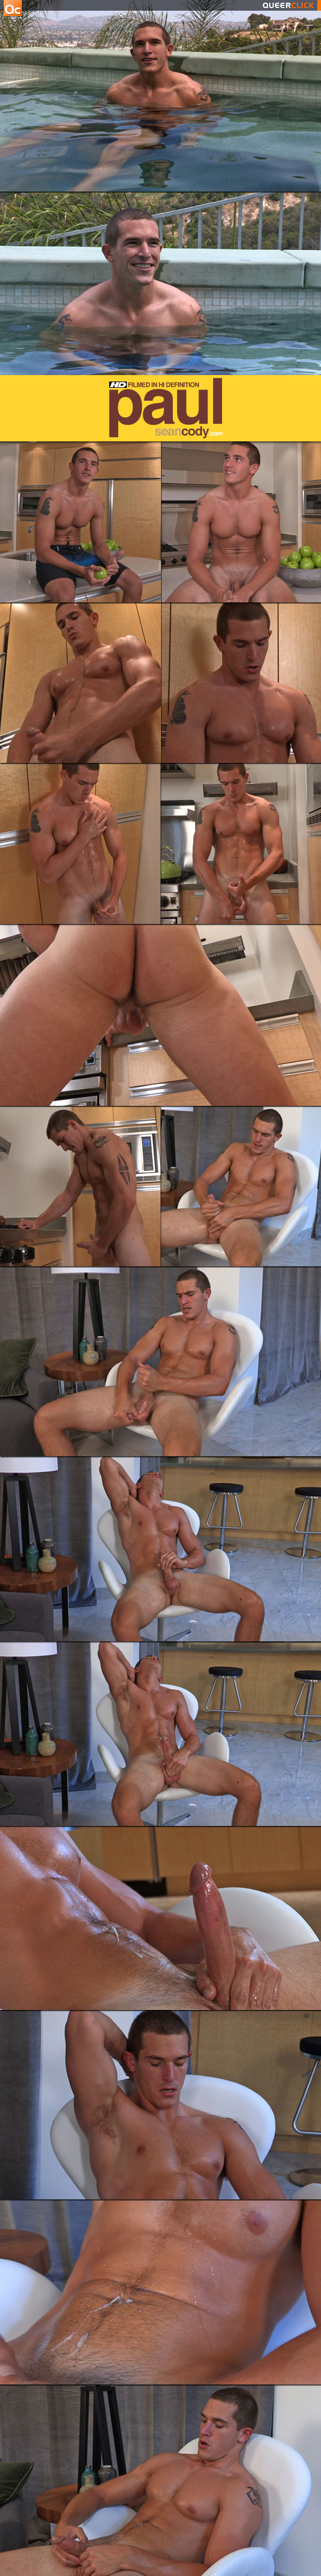 Sean Cody: Paul(3)